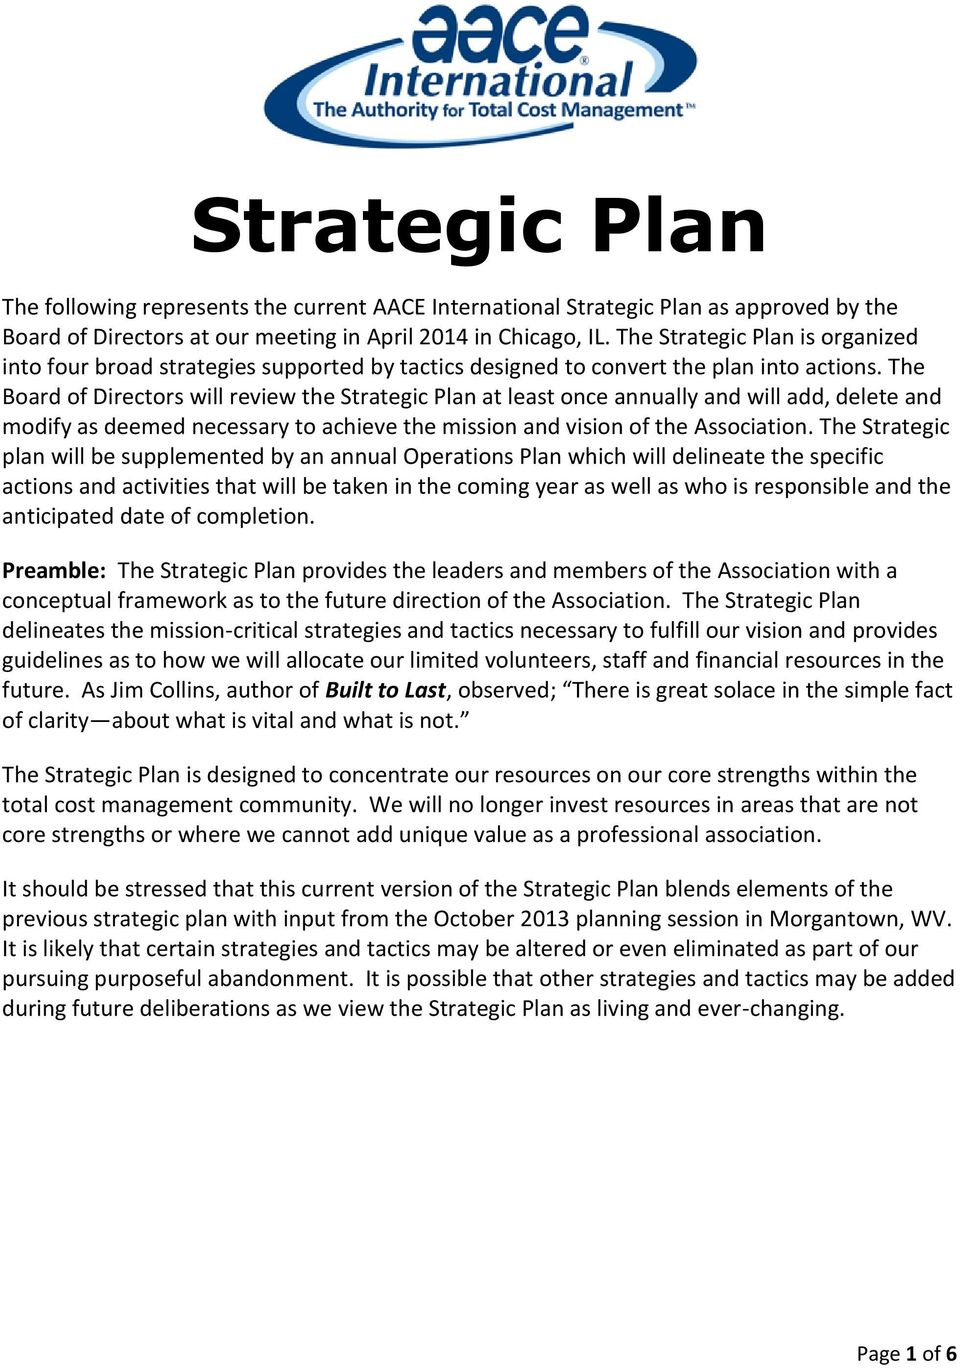 The Board of Directors will review the Strategic Plan at least once annually and will add, delete and modify as deemed necessary to achieve the mission and vision of the Association.